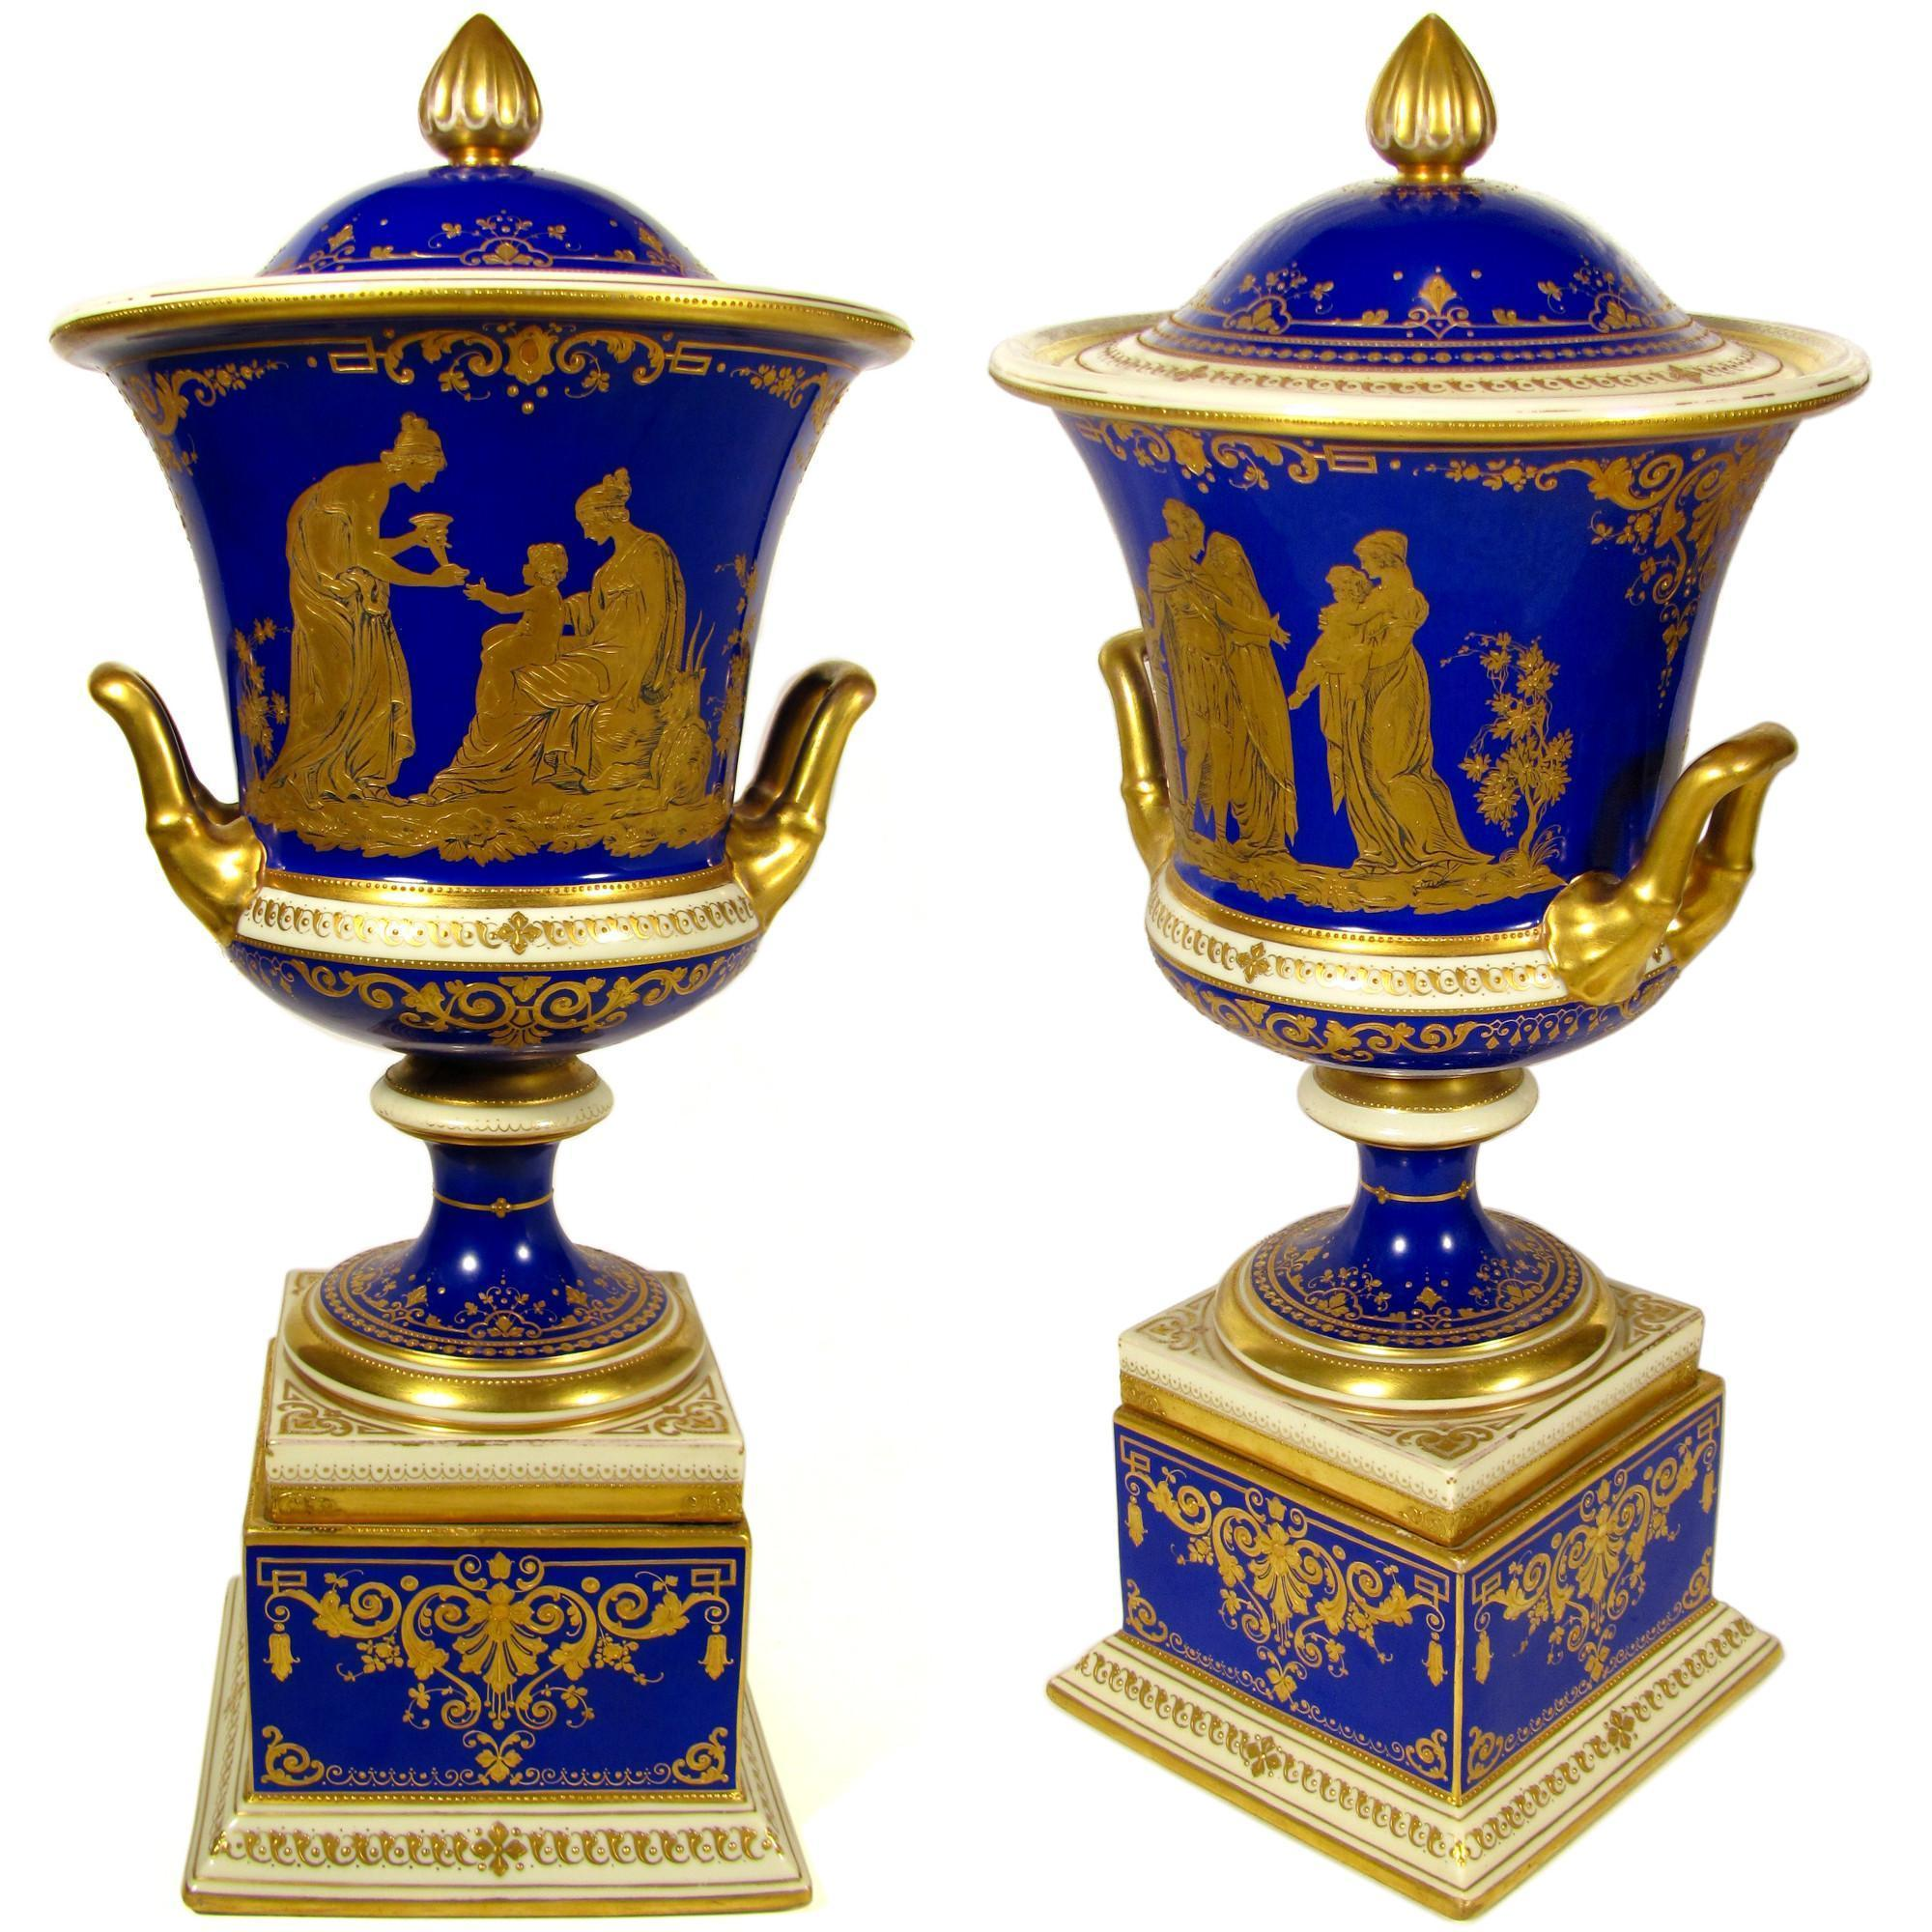 Large Antique A. Lamm Dresden German Porcelain Cobalt Blue Hand Painted Raised Gold Lidded Urn